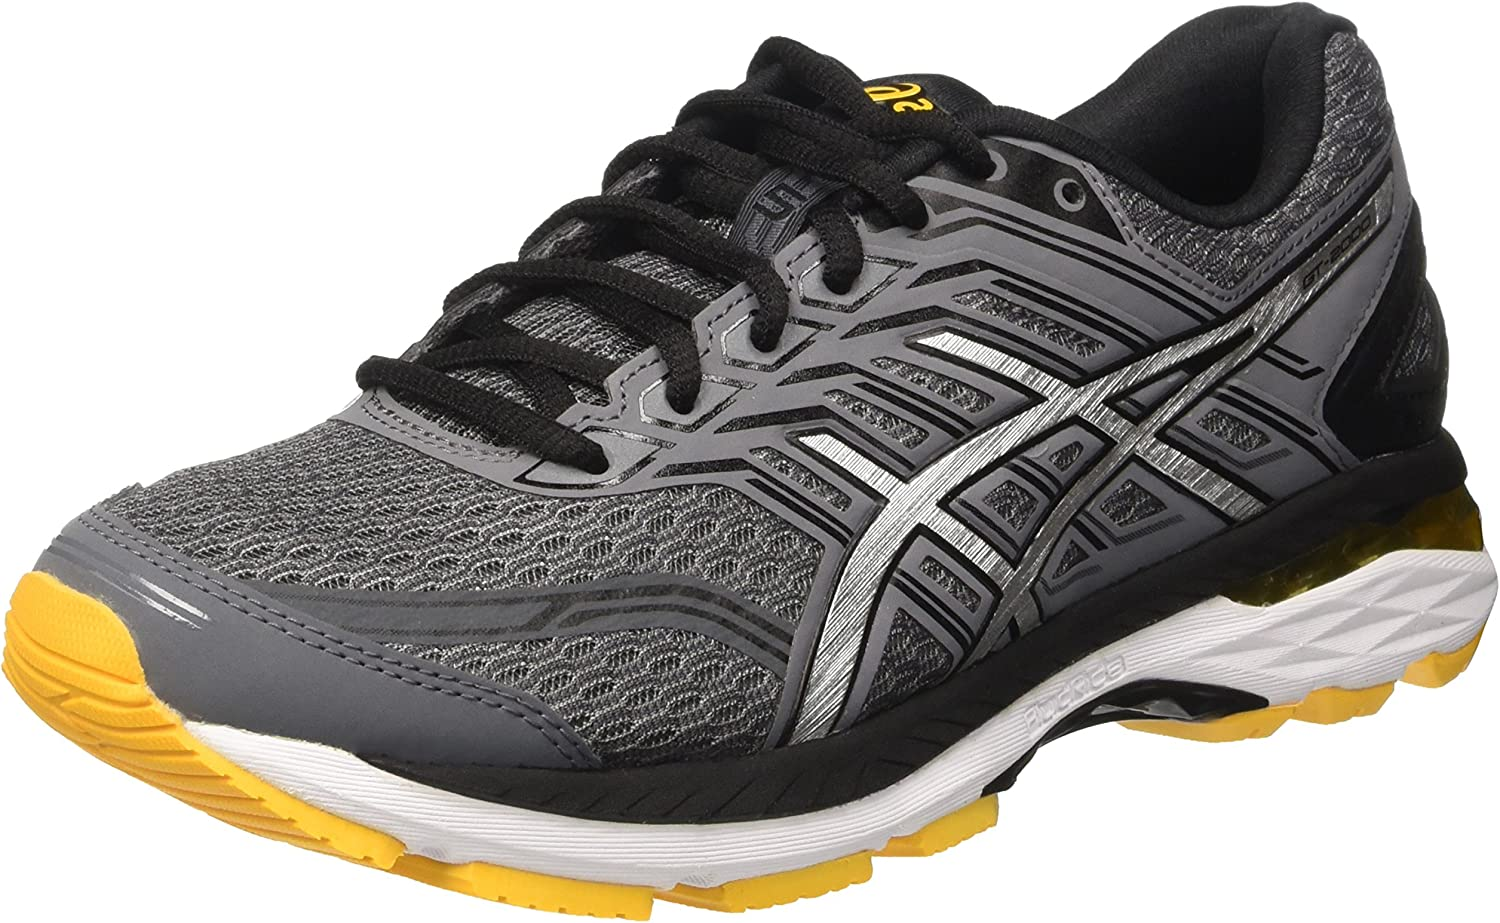 ASICS Financial sales sale Men's Running Shoes Multicolour Black Fusion Gold Carbon Spring new work one after another